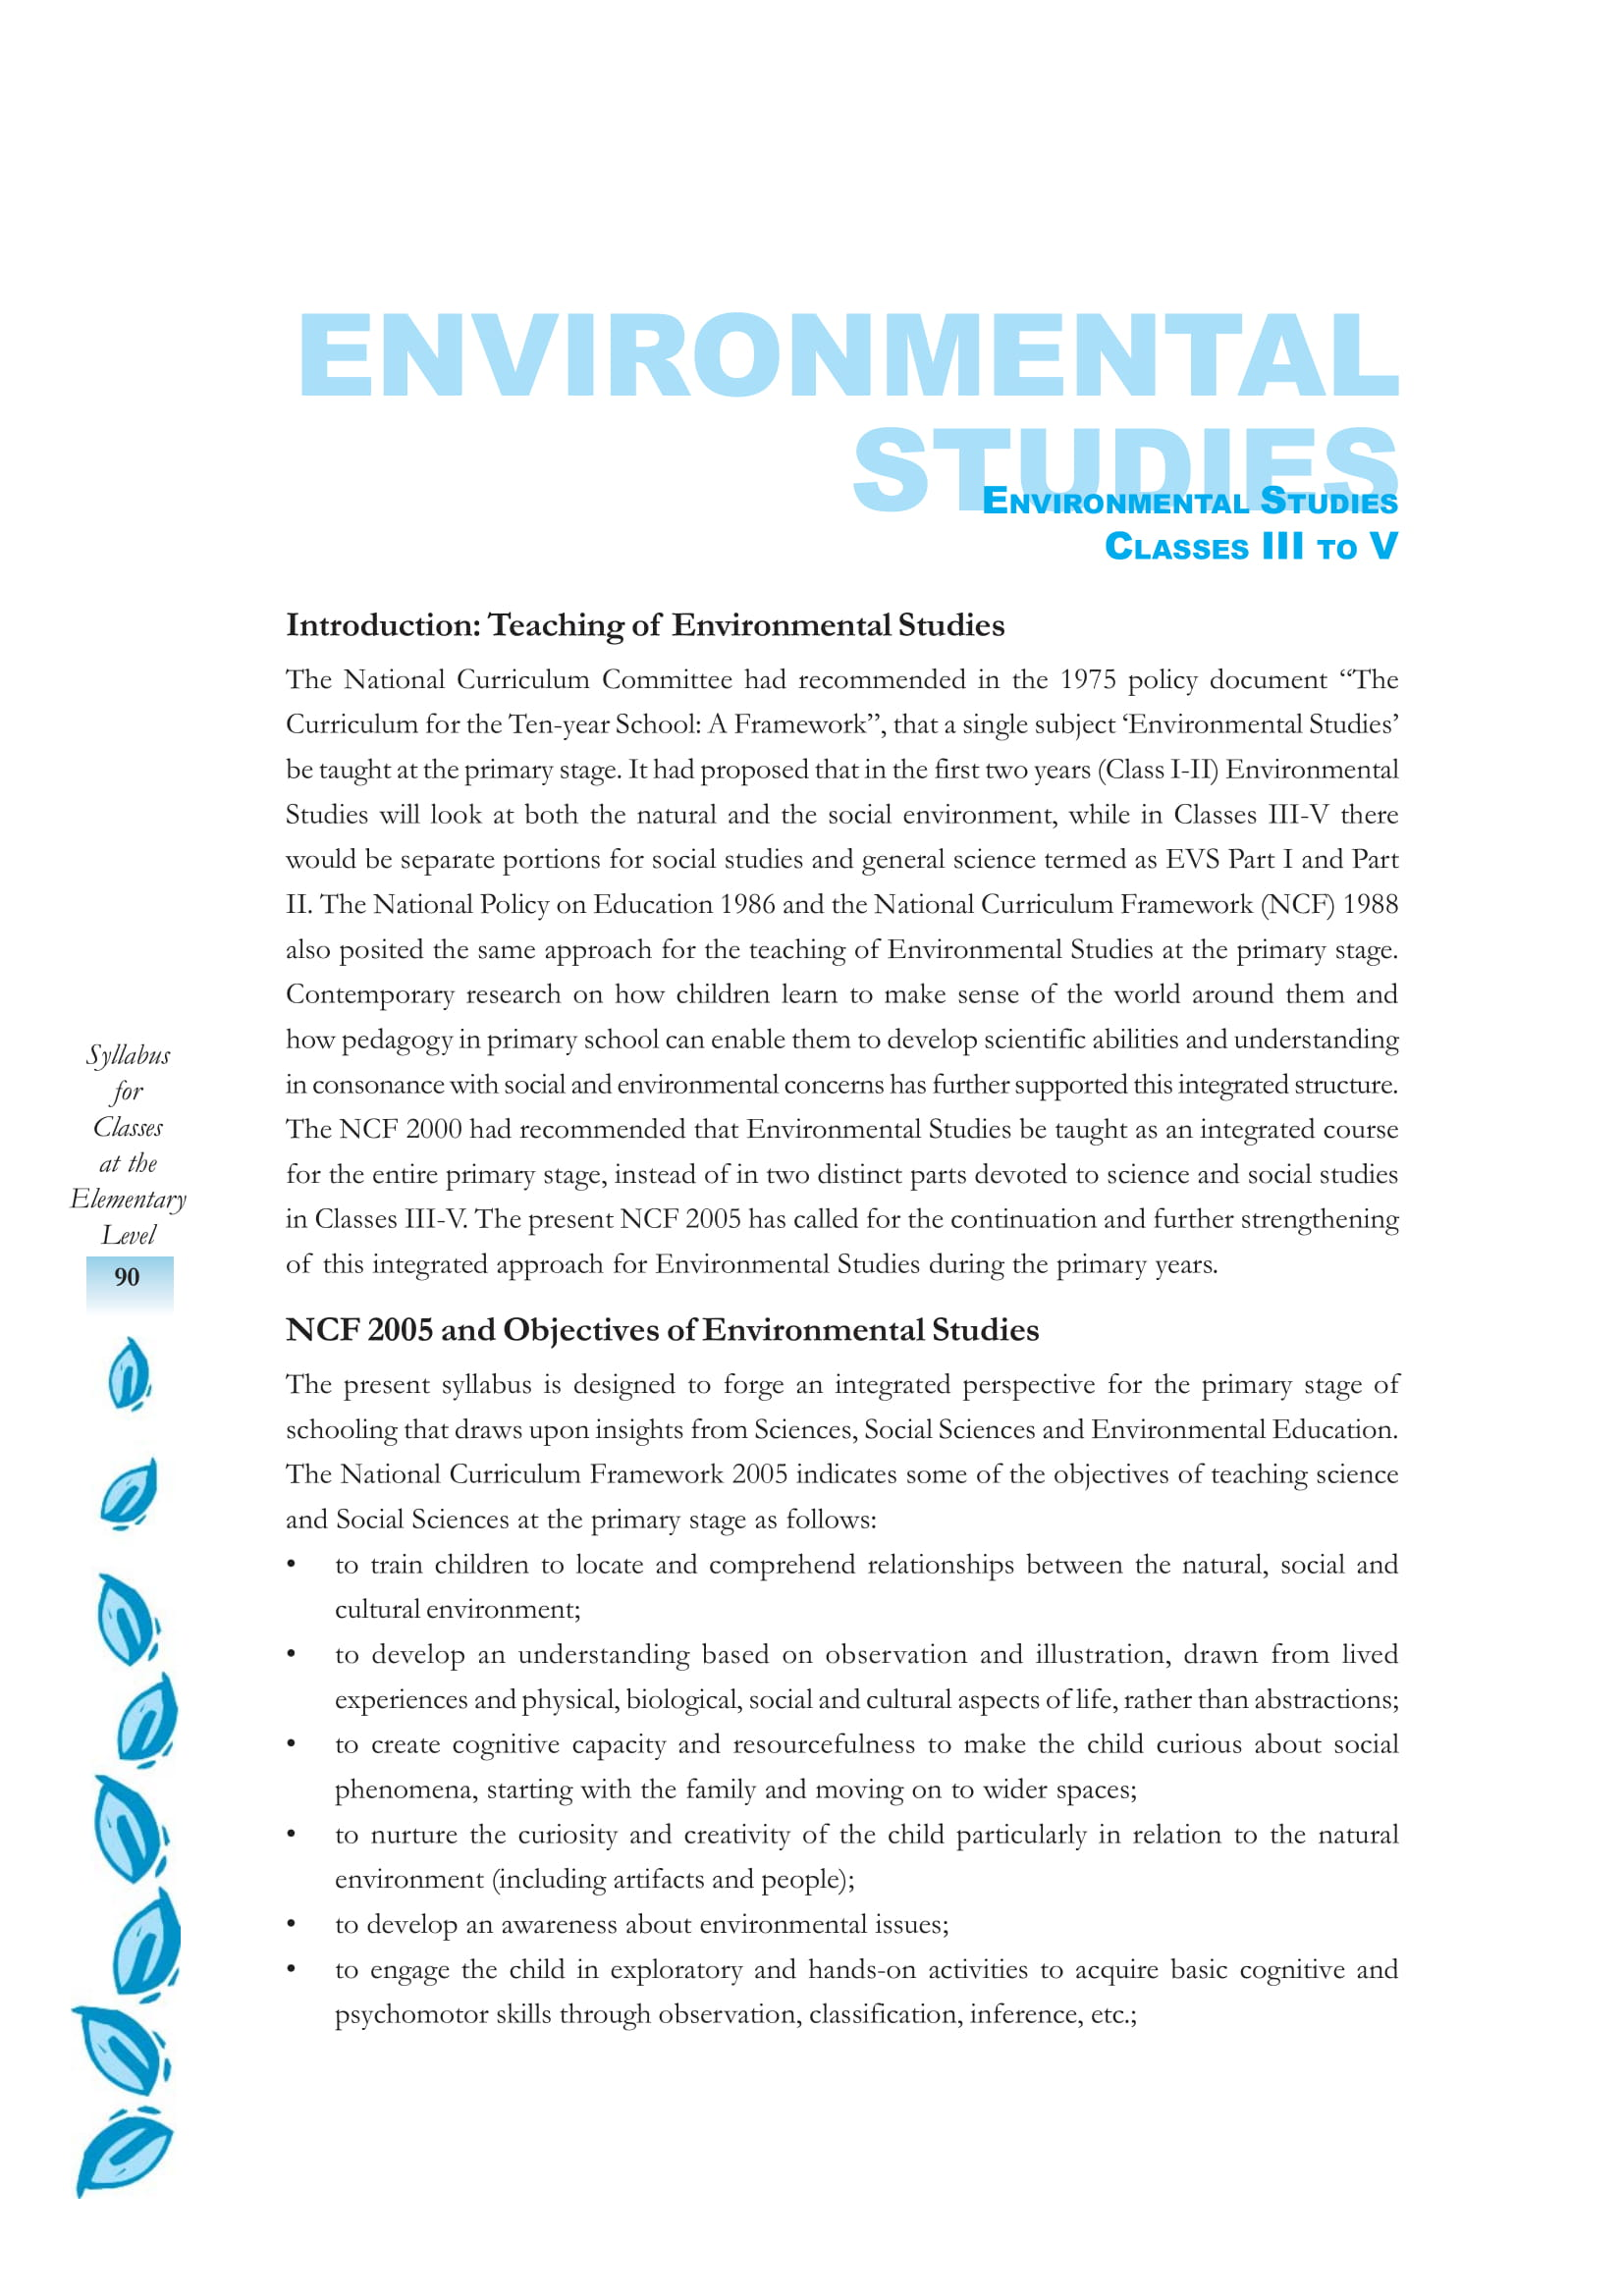 CBSE Syllabus For Environmental Science EVS Classes 3, 4, 5 – New NCERT Pattern at Elementary Level